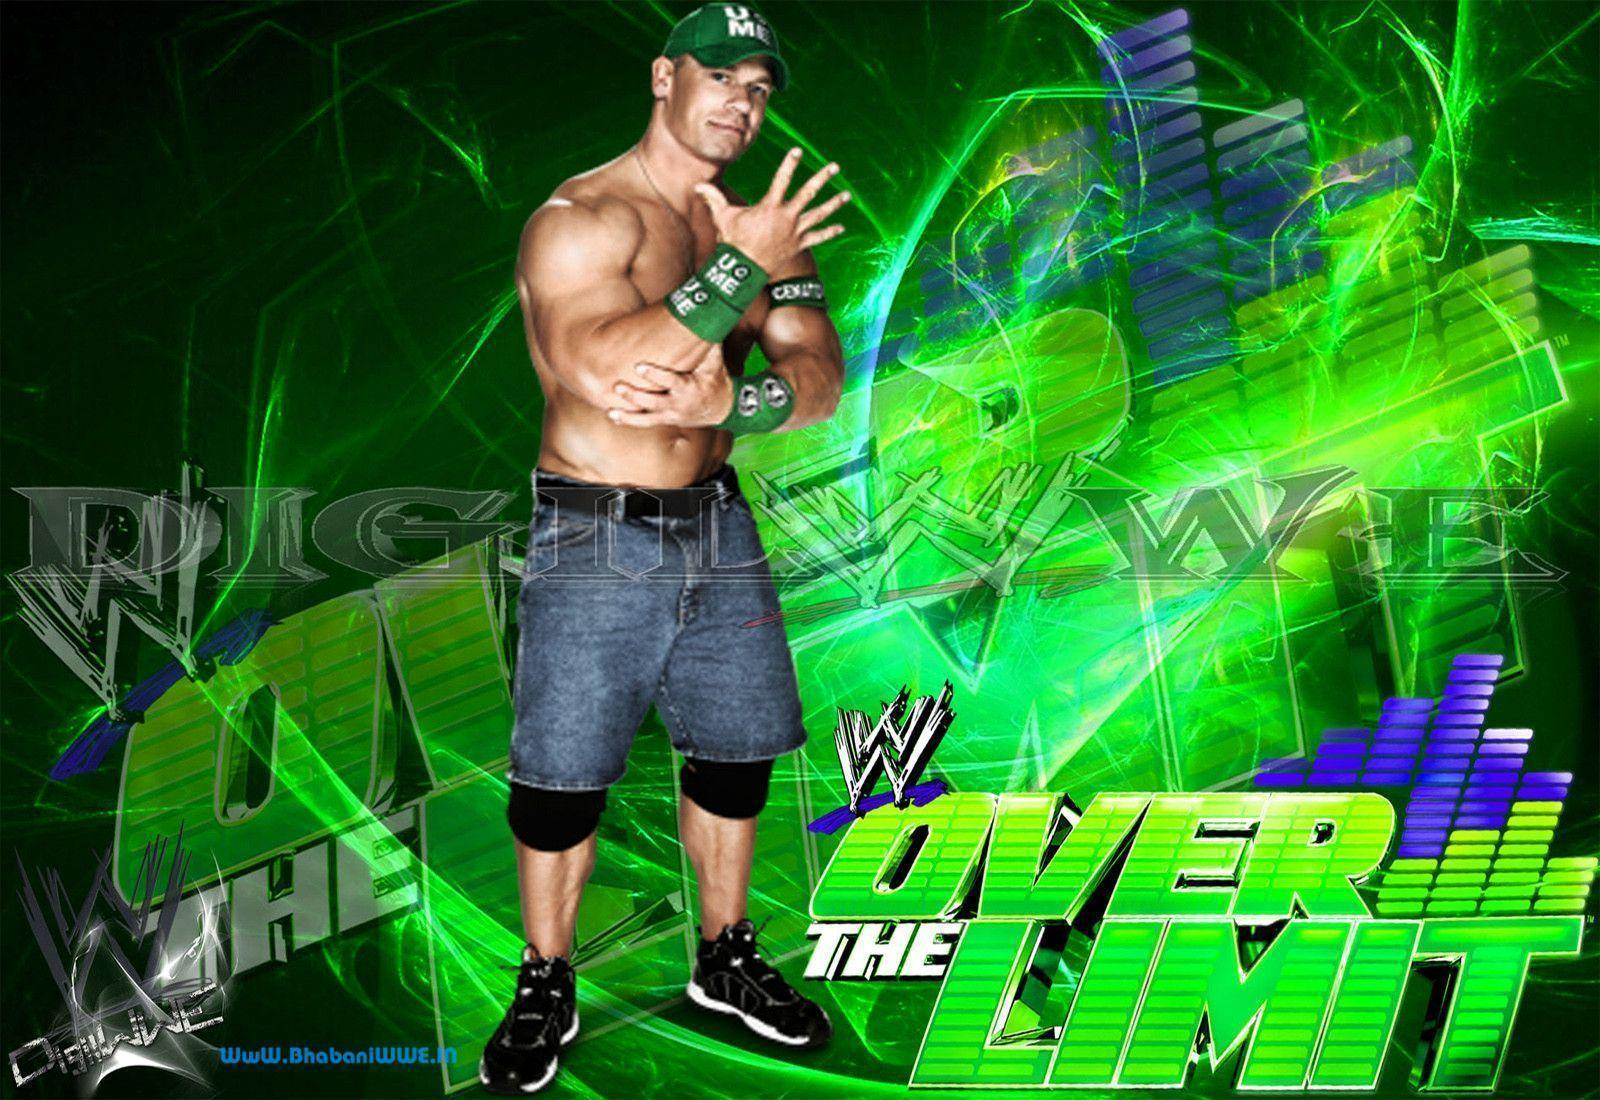 John Cena Wallpaper 2015 For Desktop Hd